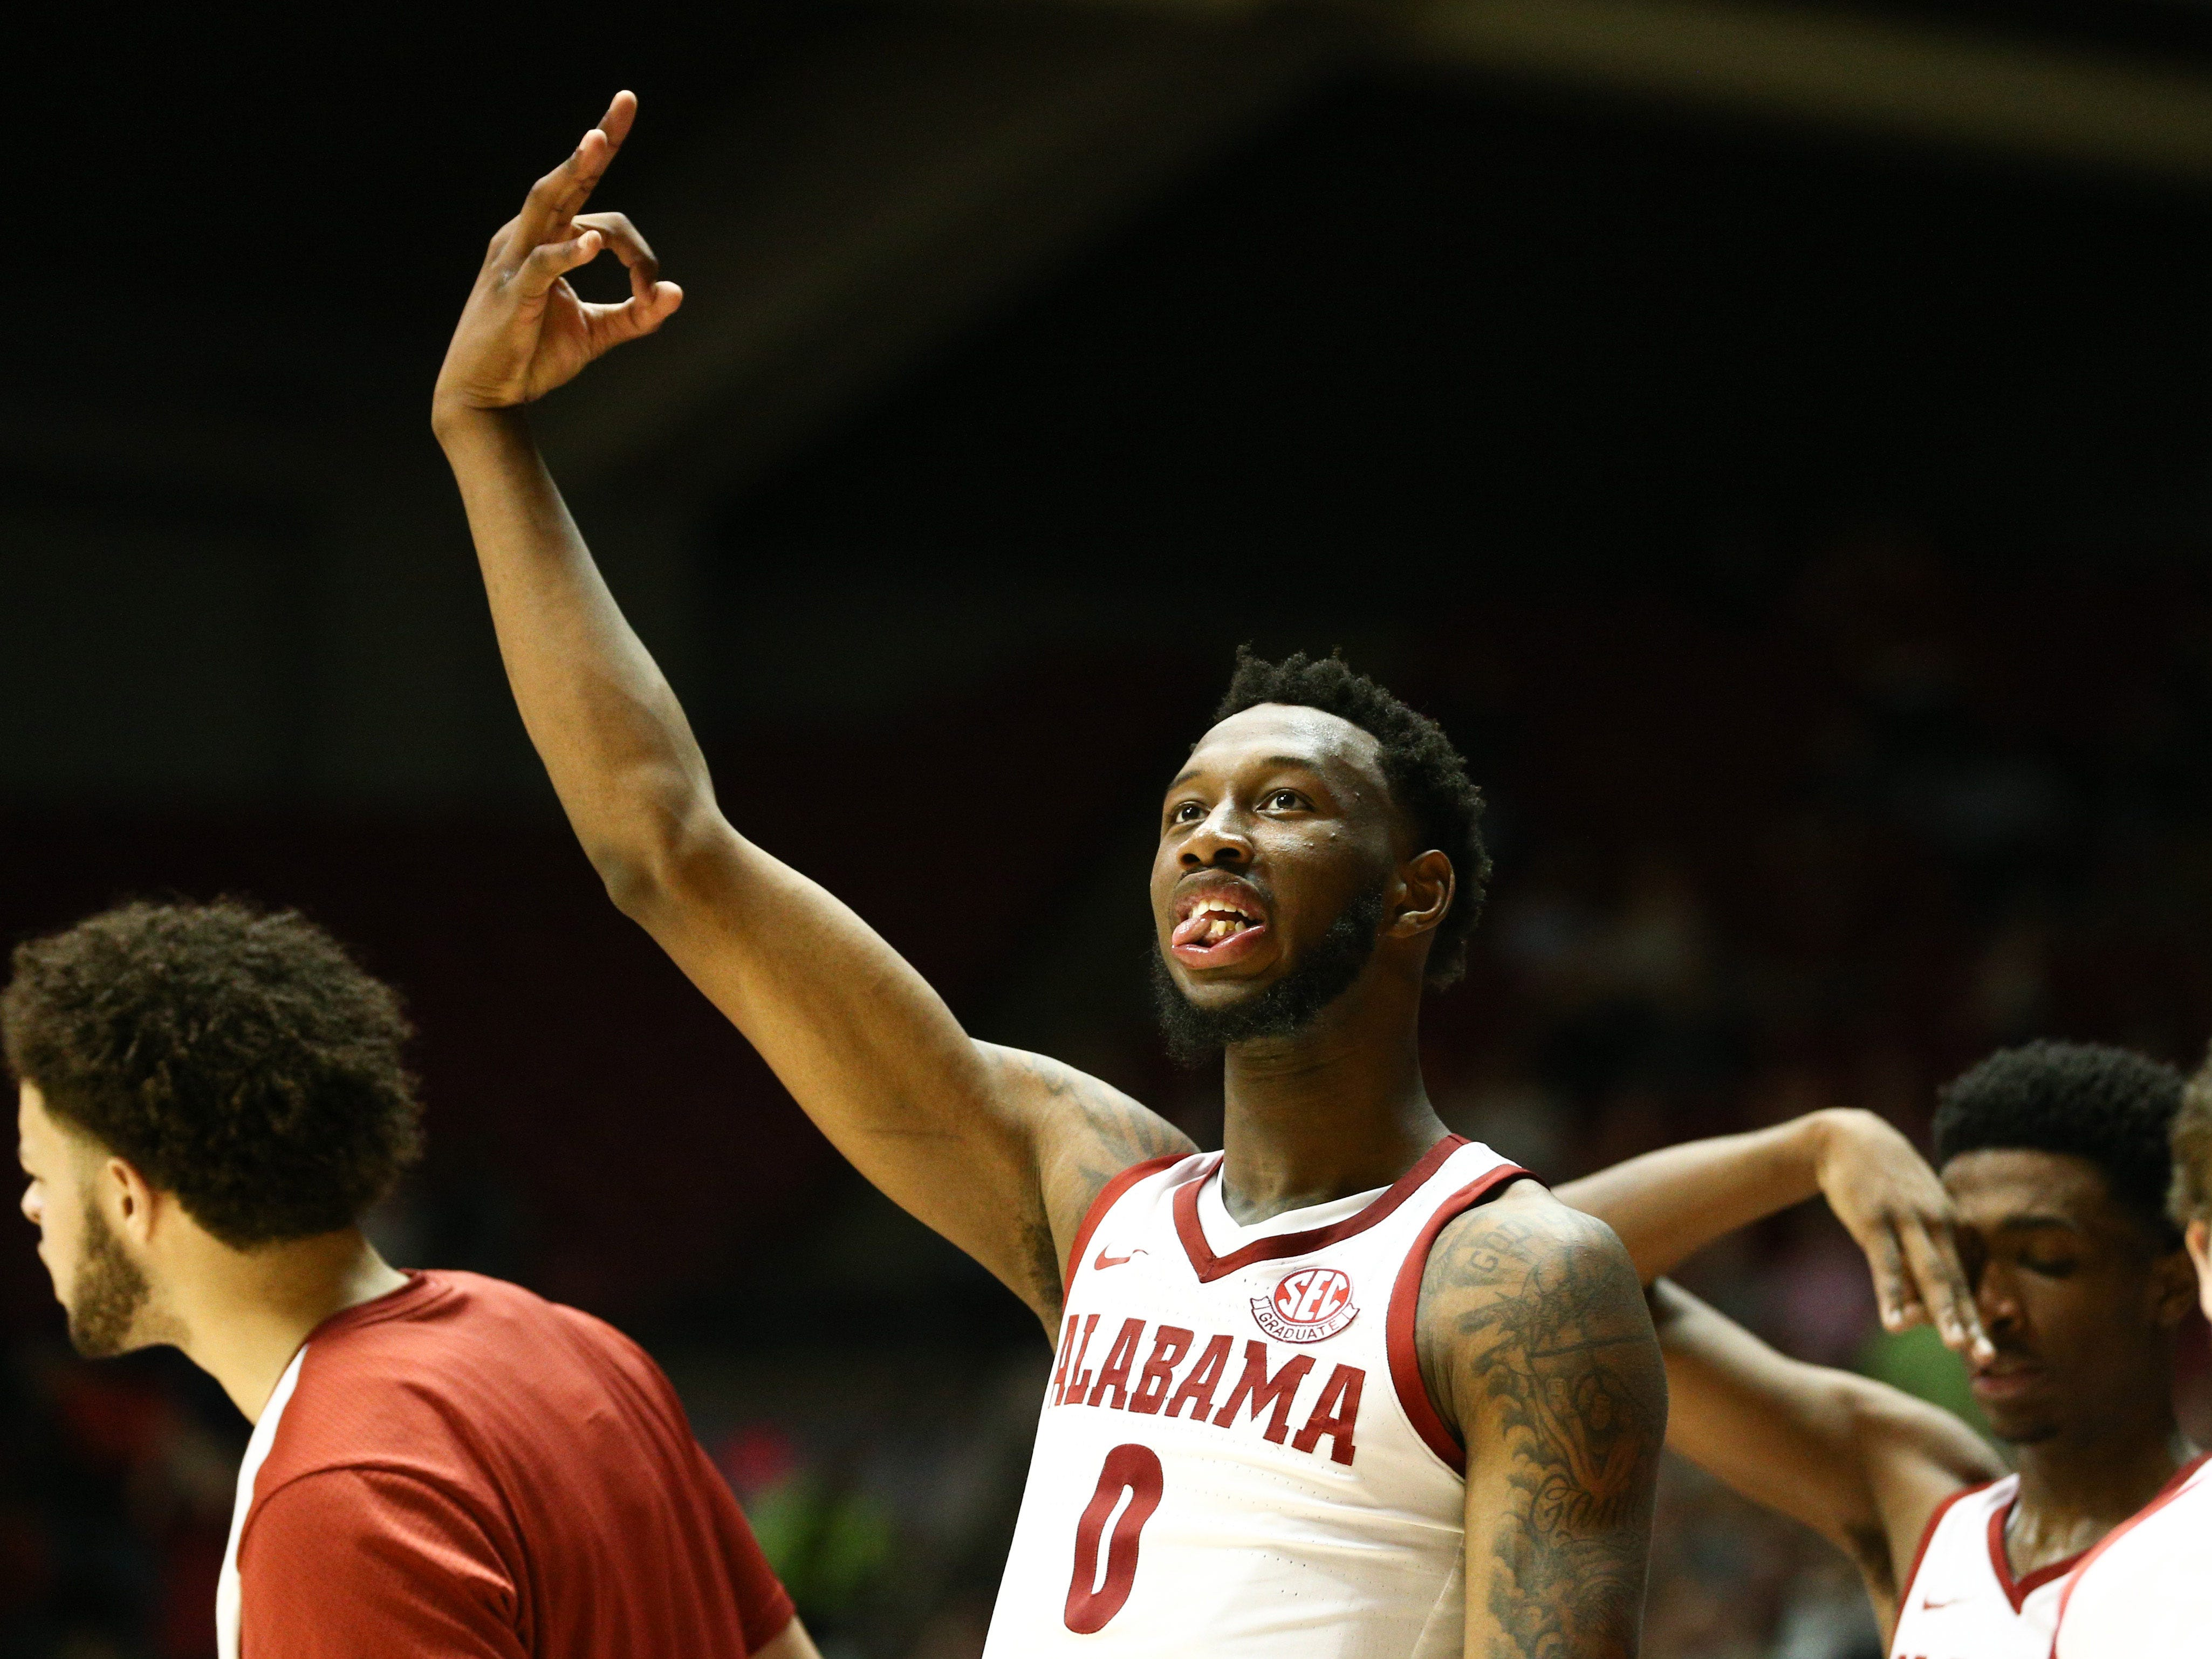 Jan 22, 2019; Tuscaloosa, AL, USA; Alabama Crimson Tide forward Donta Hall (0) reacts as a teammate hits a three point basket against the Mississippi Rebels during the second half at Coleman Coliseum. Mandatory Credit: Marvin Gentry-USA TODAY Sports